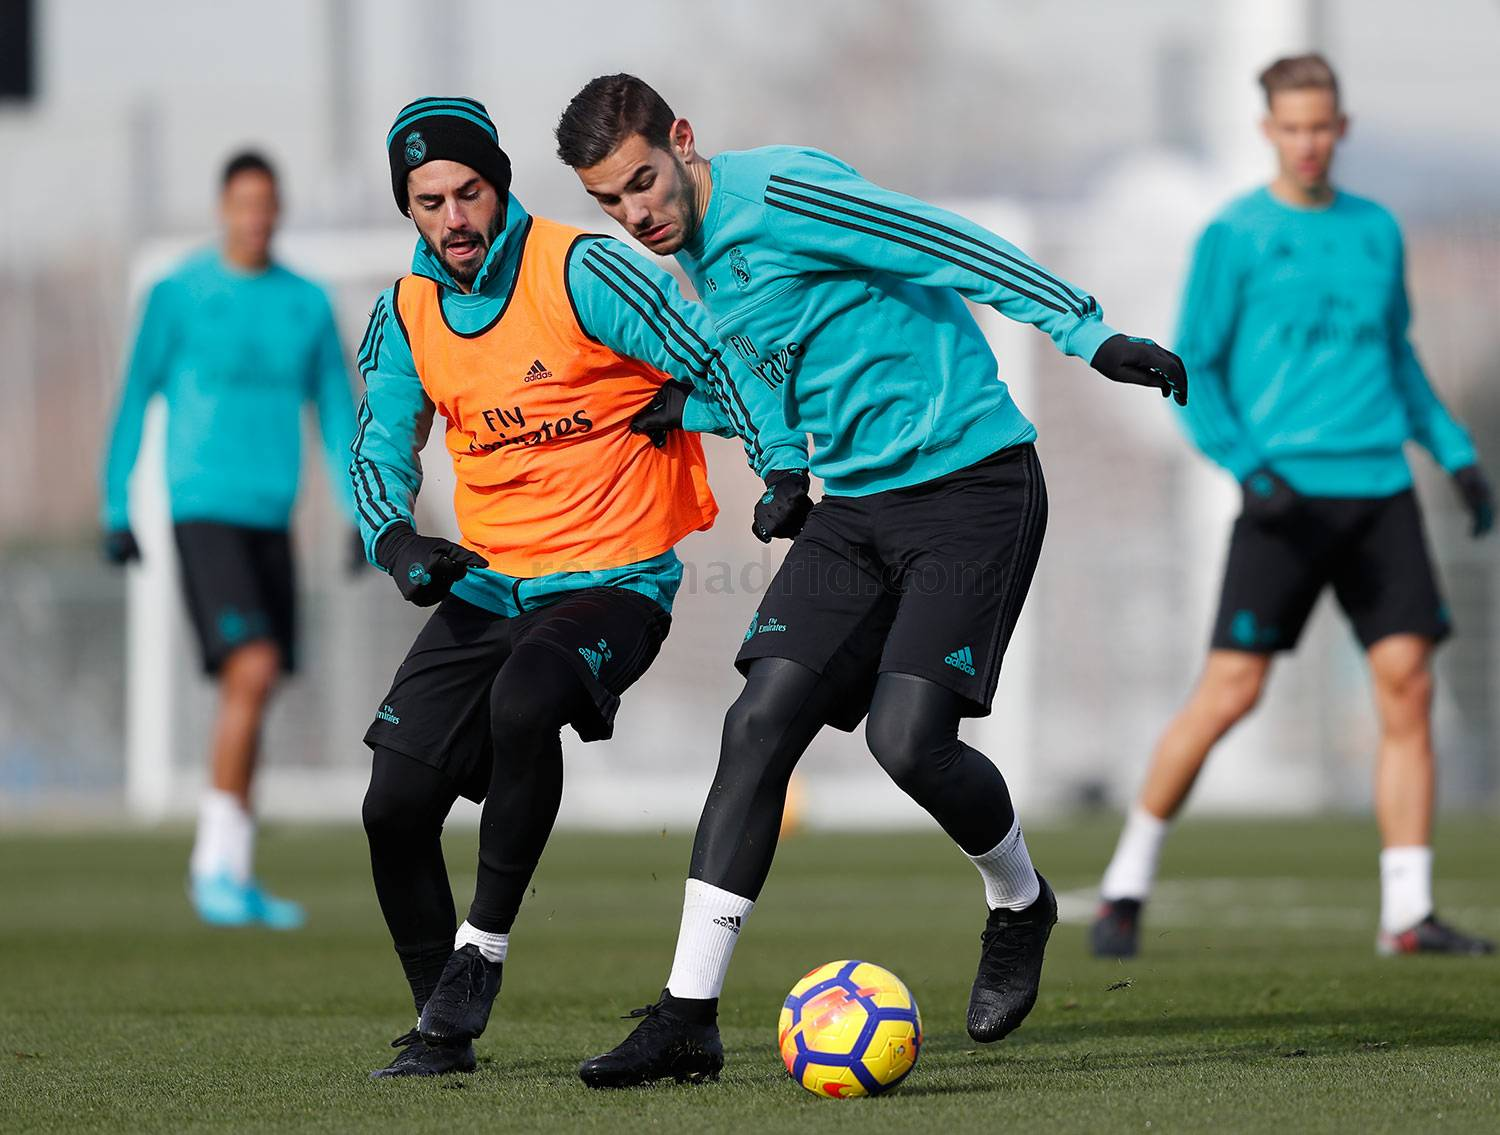 Real Madrid - Entrenamiento del Real Madrid - 20-01-2018